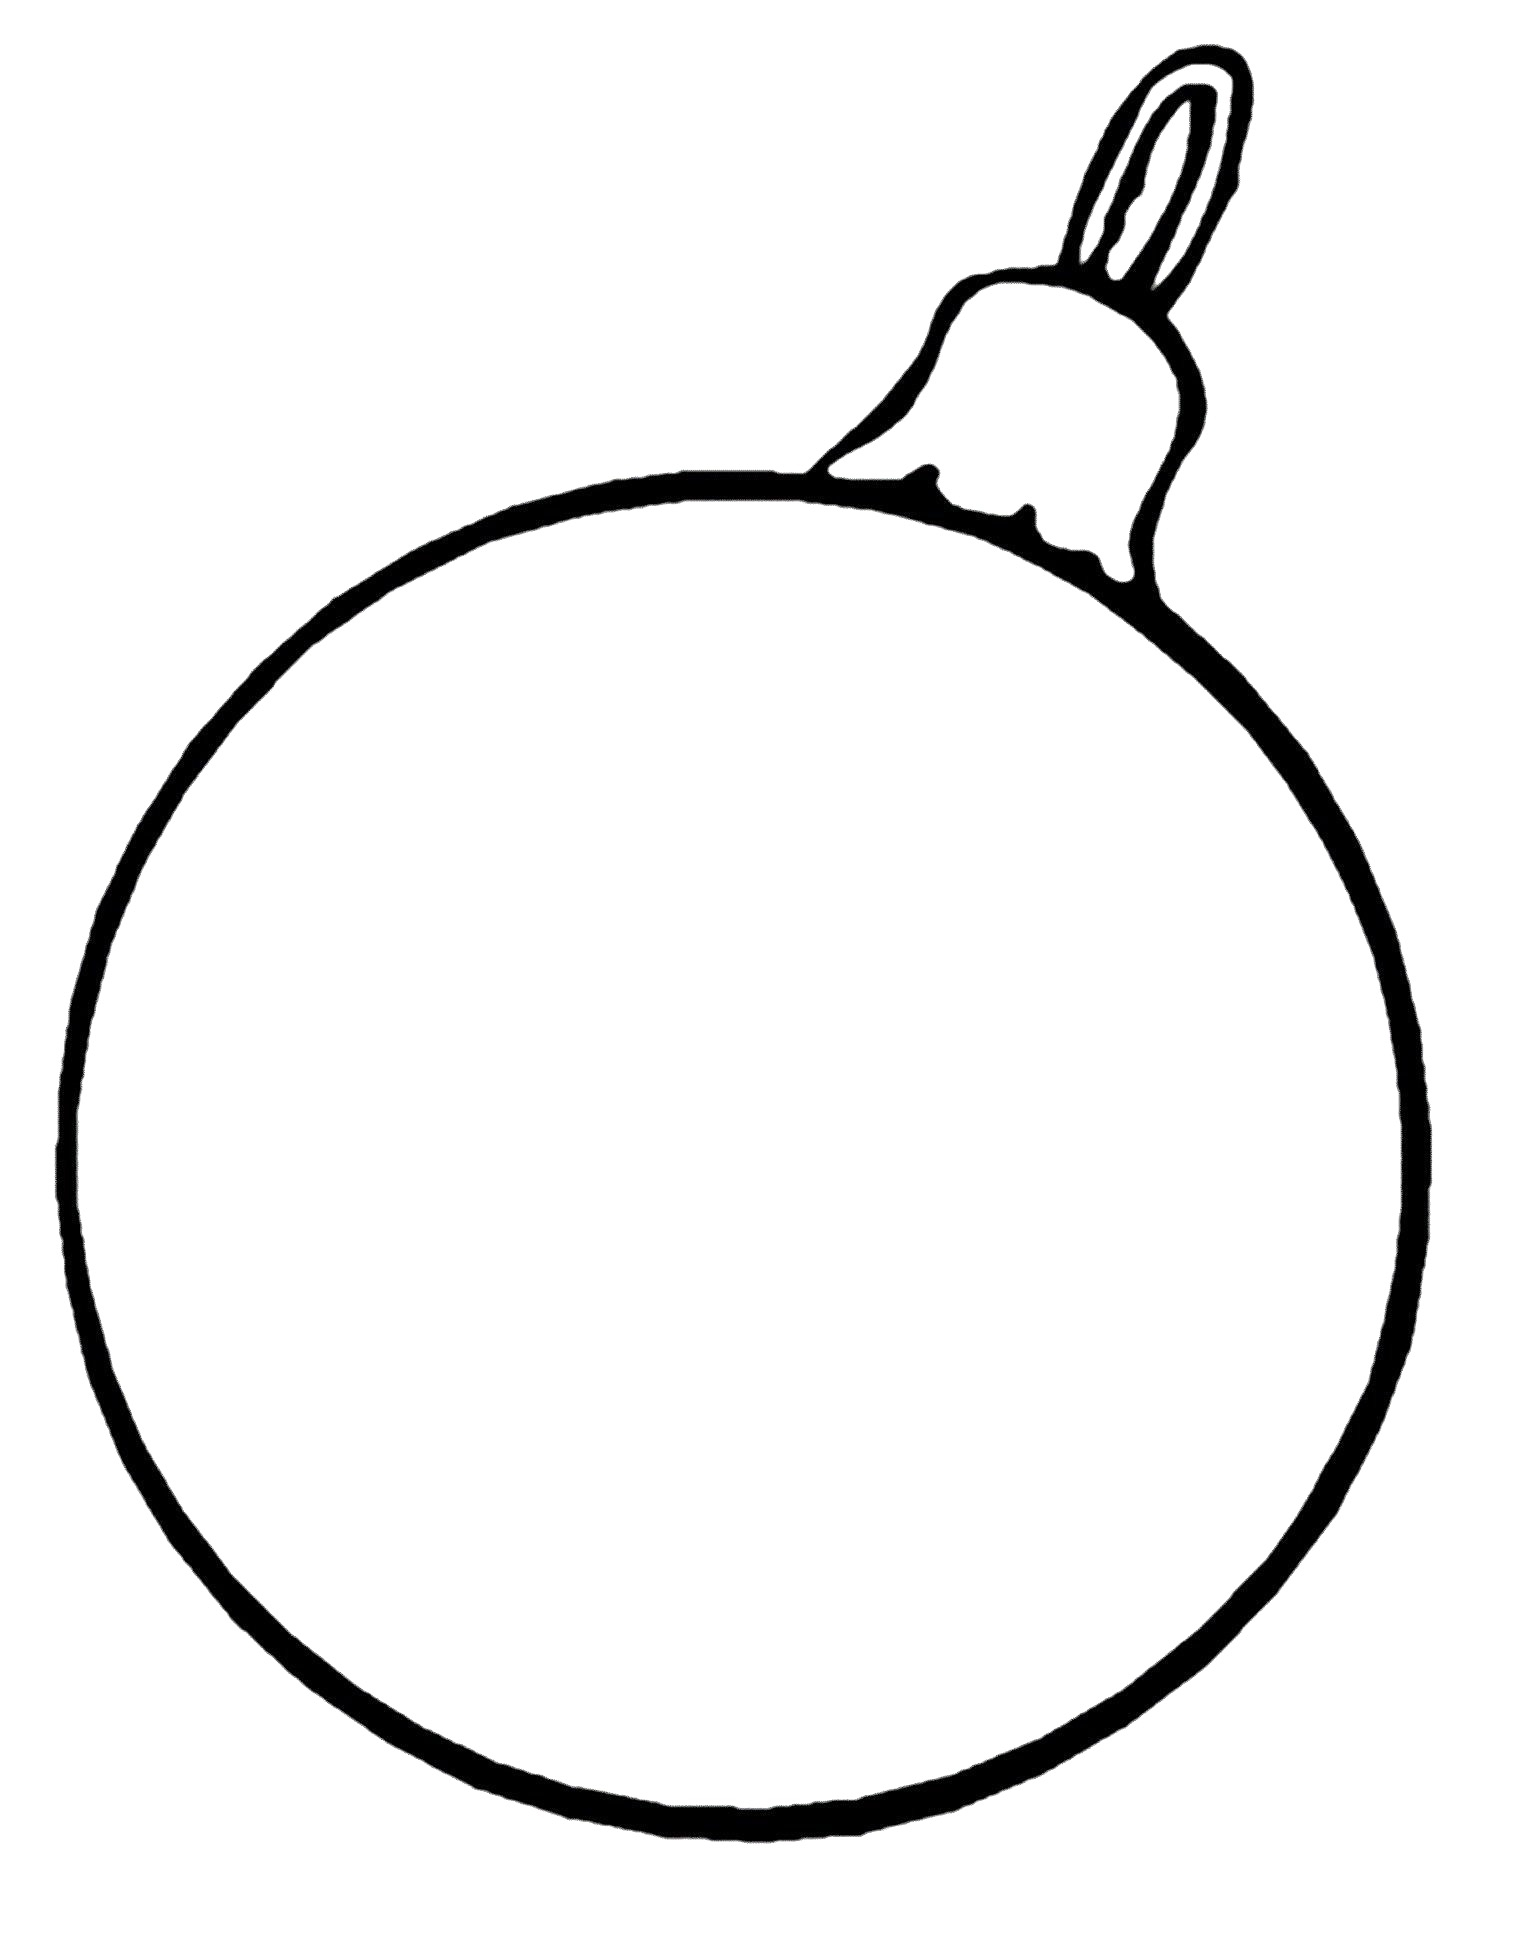 1536x1944 Best Of Christmas Ornaments Coloring Pages Printable Glum Me